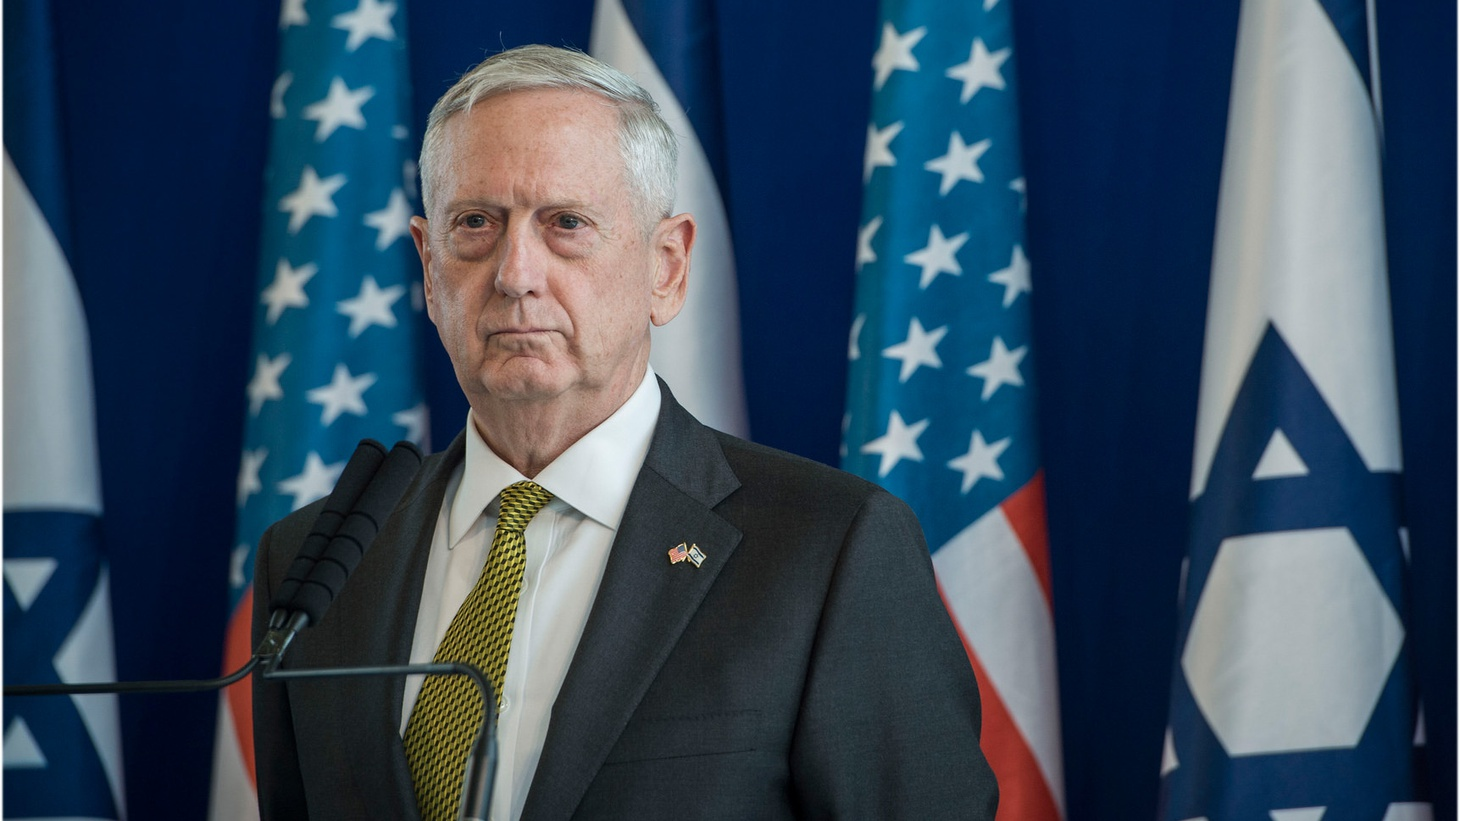 Secretary of Defense Jim Mattis and Israel's Minister of Defense Avigdor Lieberman host a joint press conference at the Israeli Ministry of Defense in Tel Aviv, Israel, April 21, 2017. Mattis is the first cabinet member from the new administration to visit Israel.